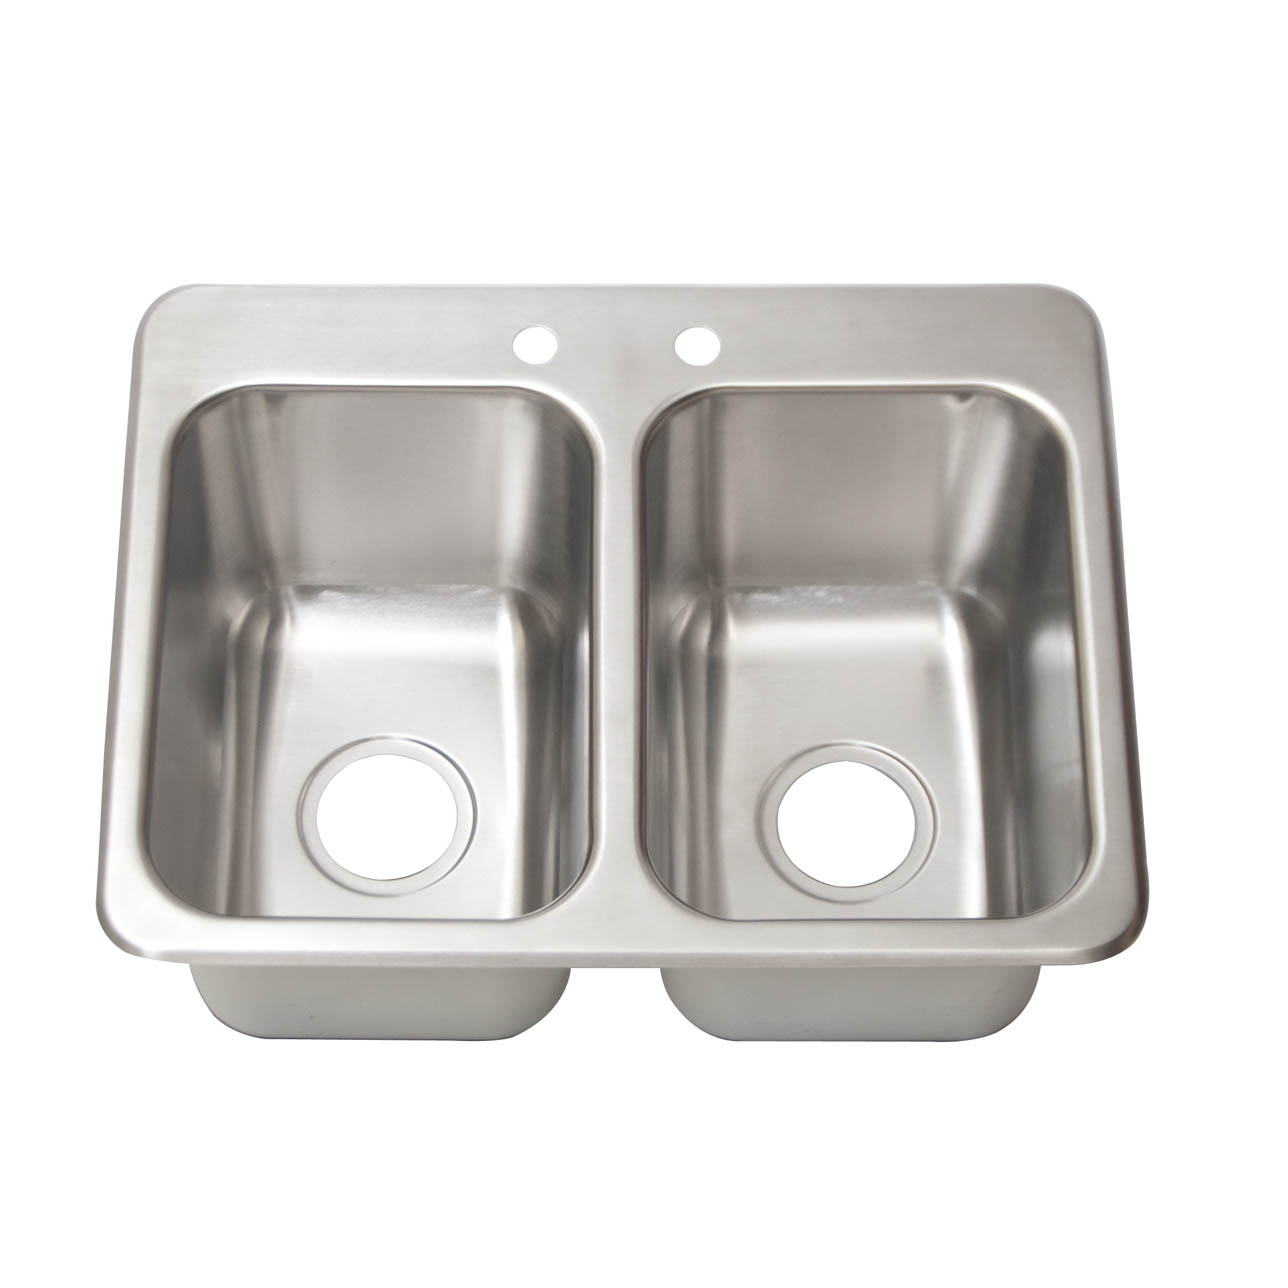 BK Resources DDI2-10141024-P-G sink, drop-in